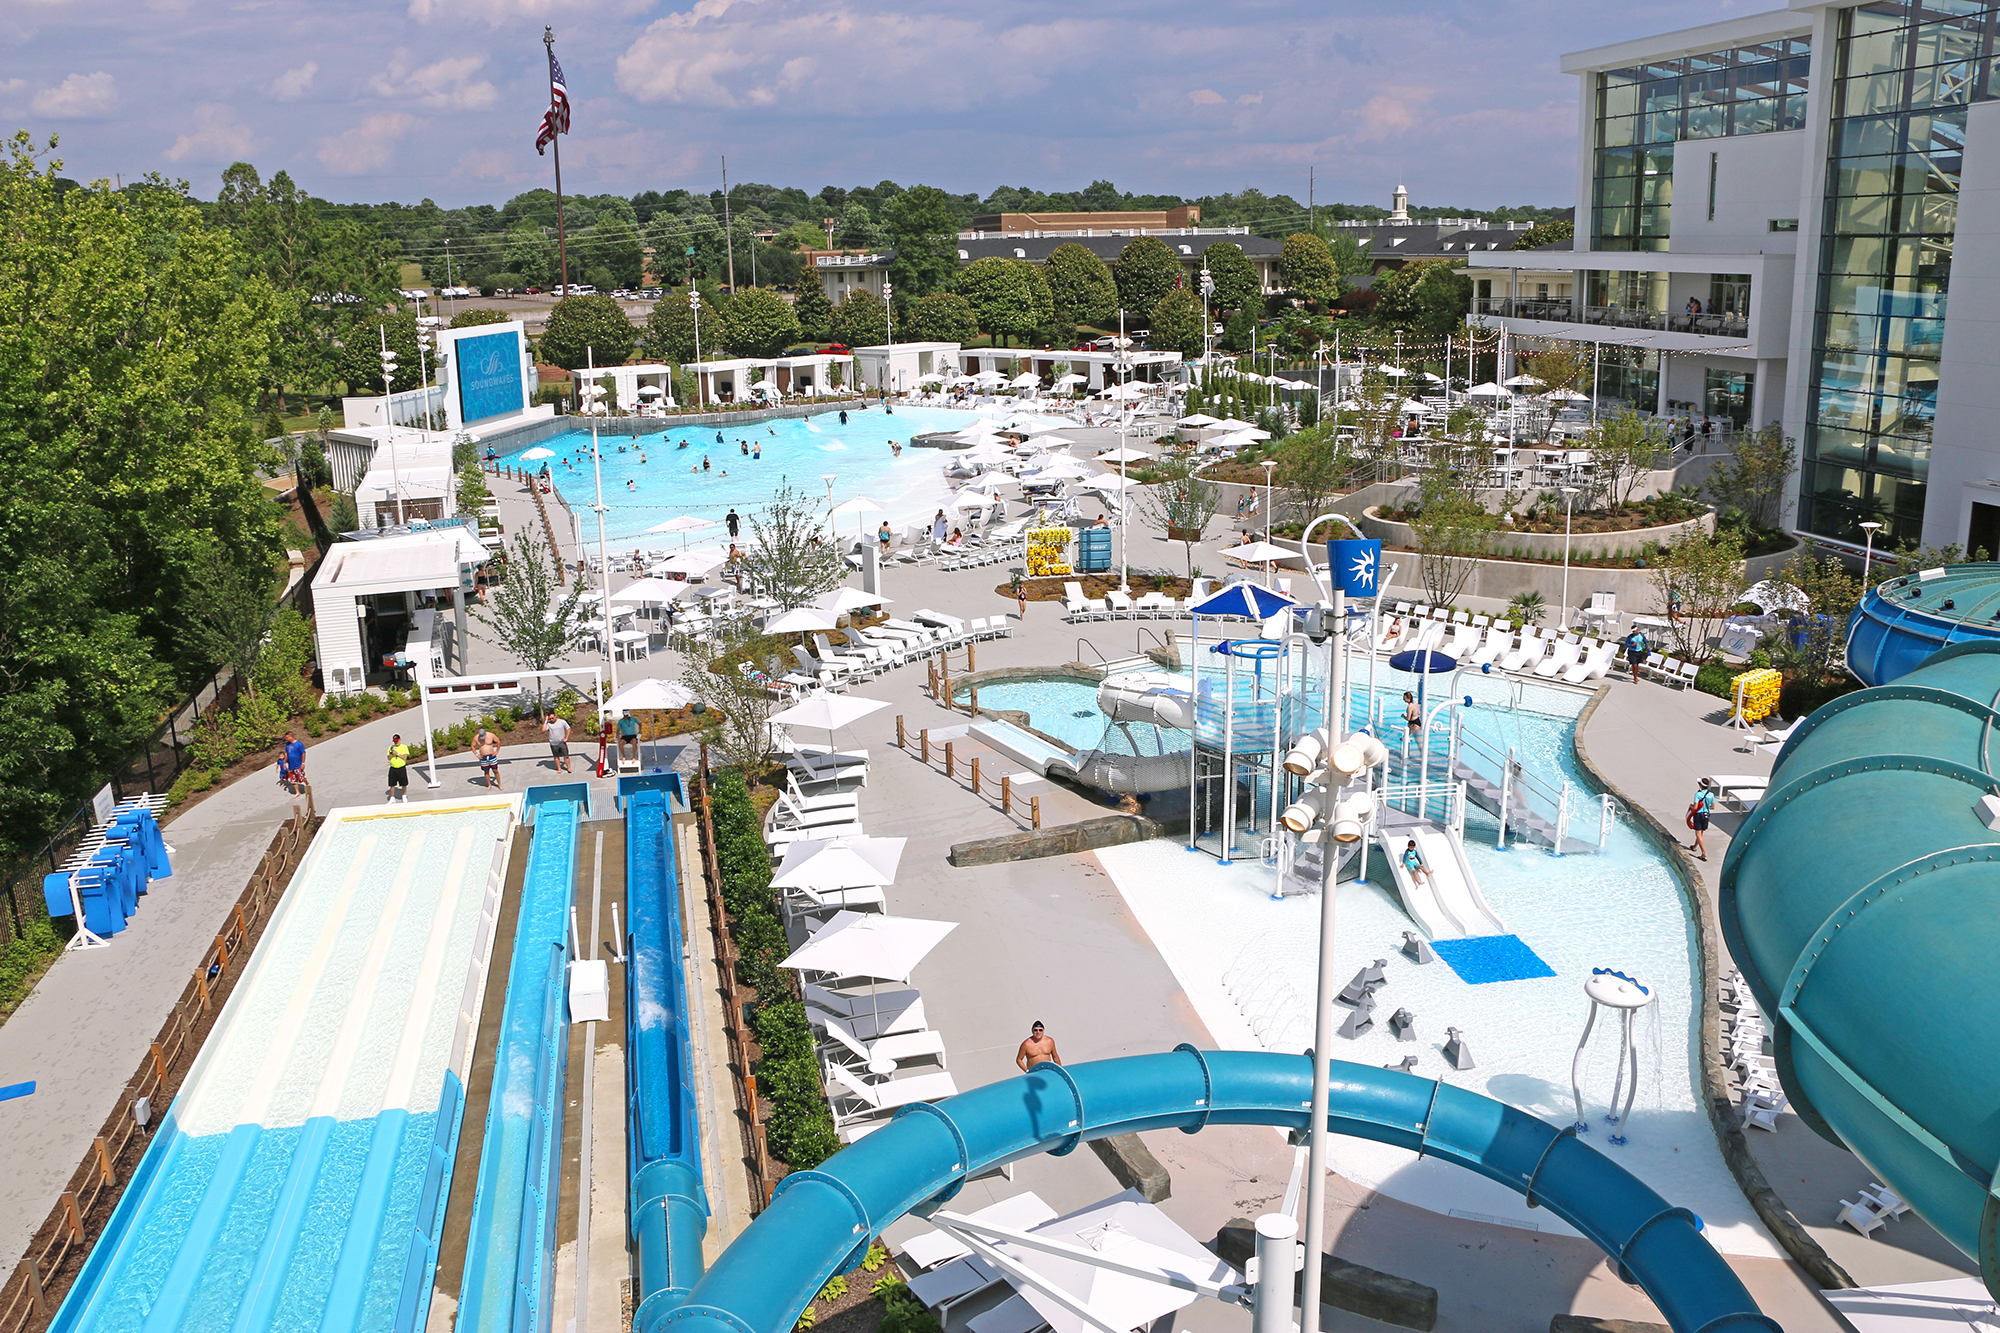 soundwaves water park outdoor overview